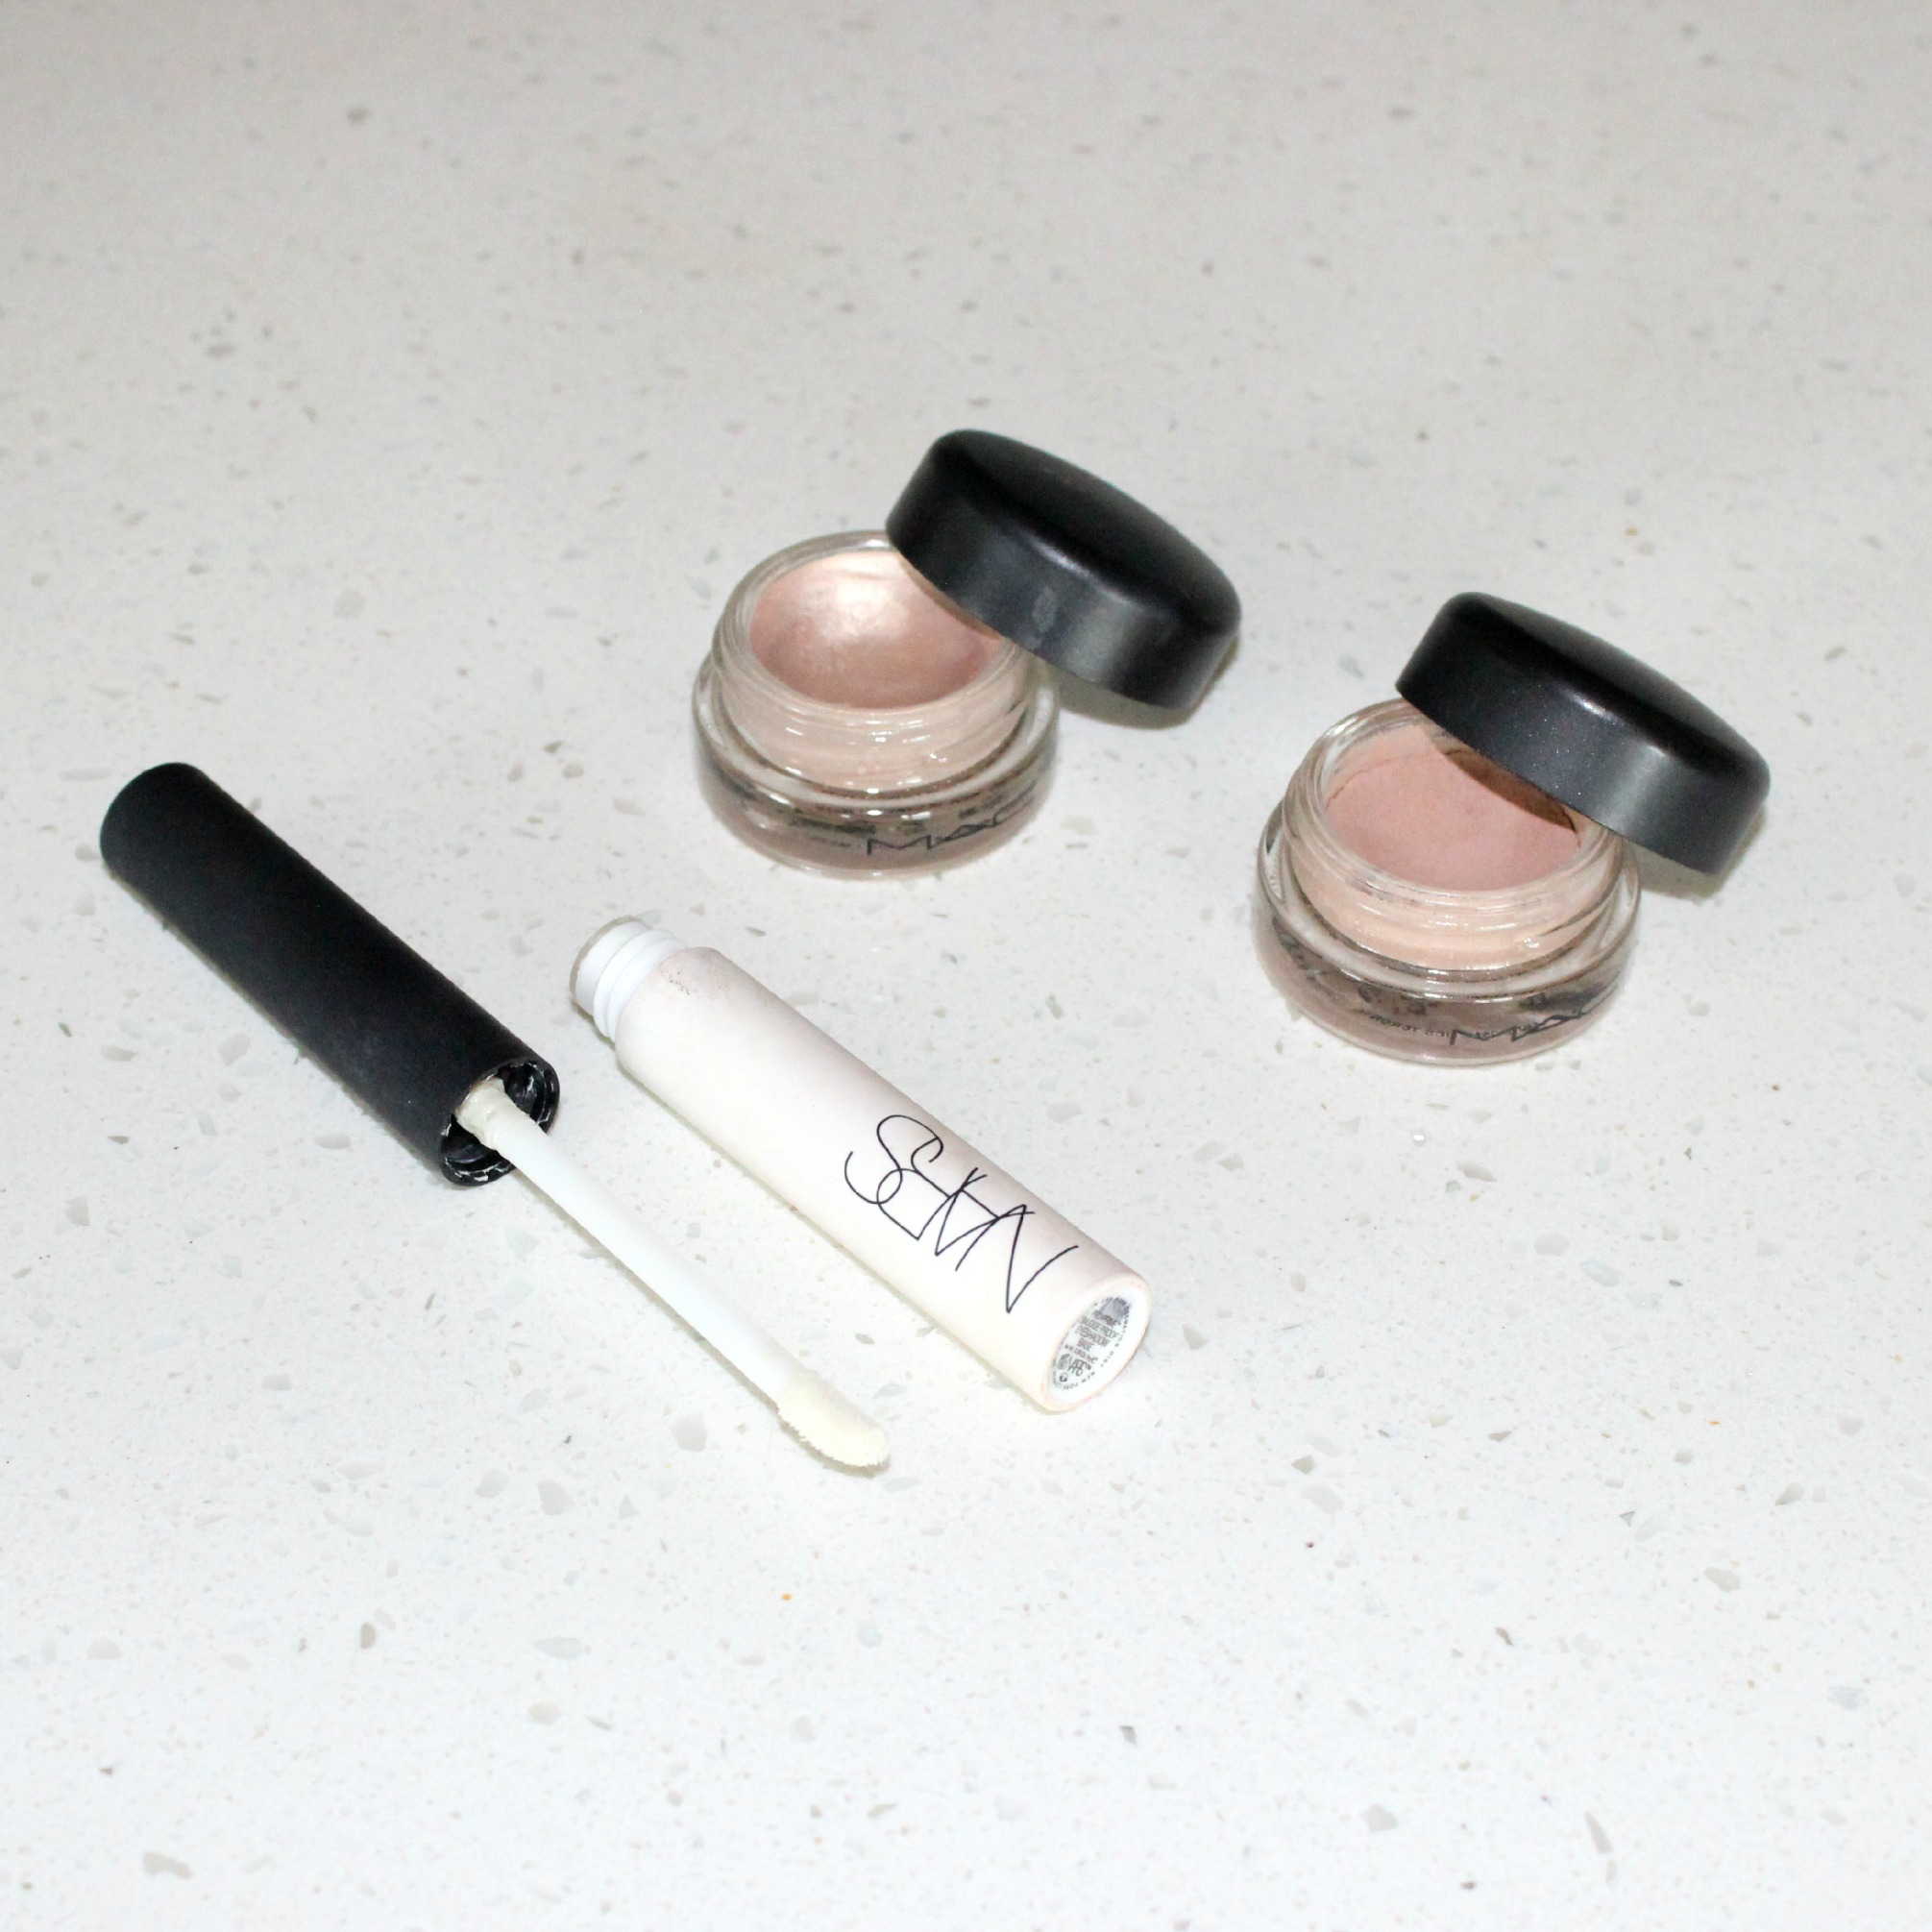 Best Eye Primers | MAC Paintpot Painterly Bare Study NARS Smudgeproof Eyeshadow Base | Brighterdarling.com